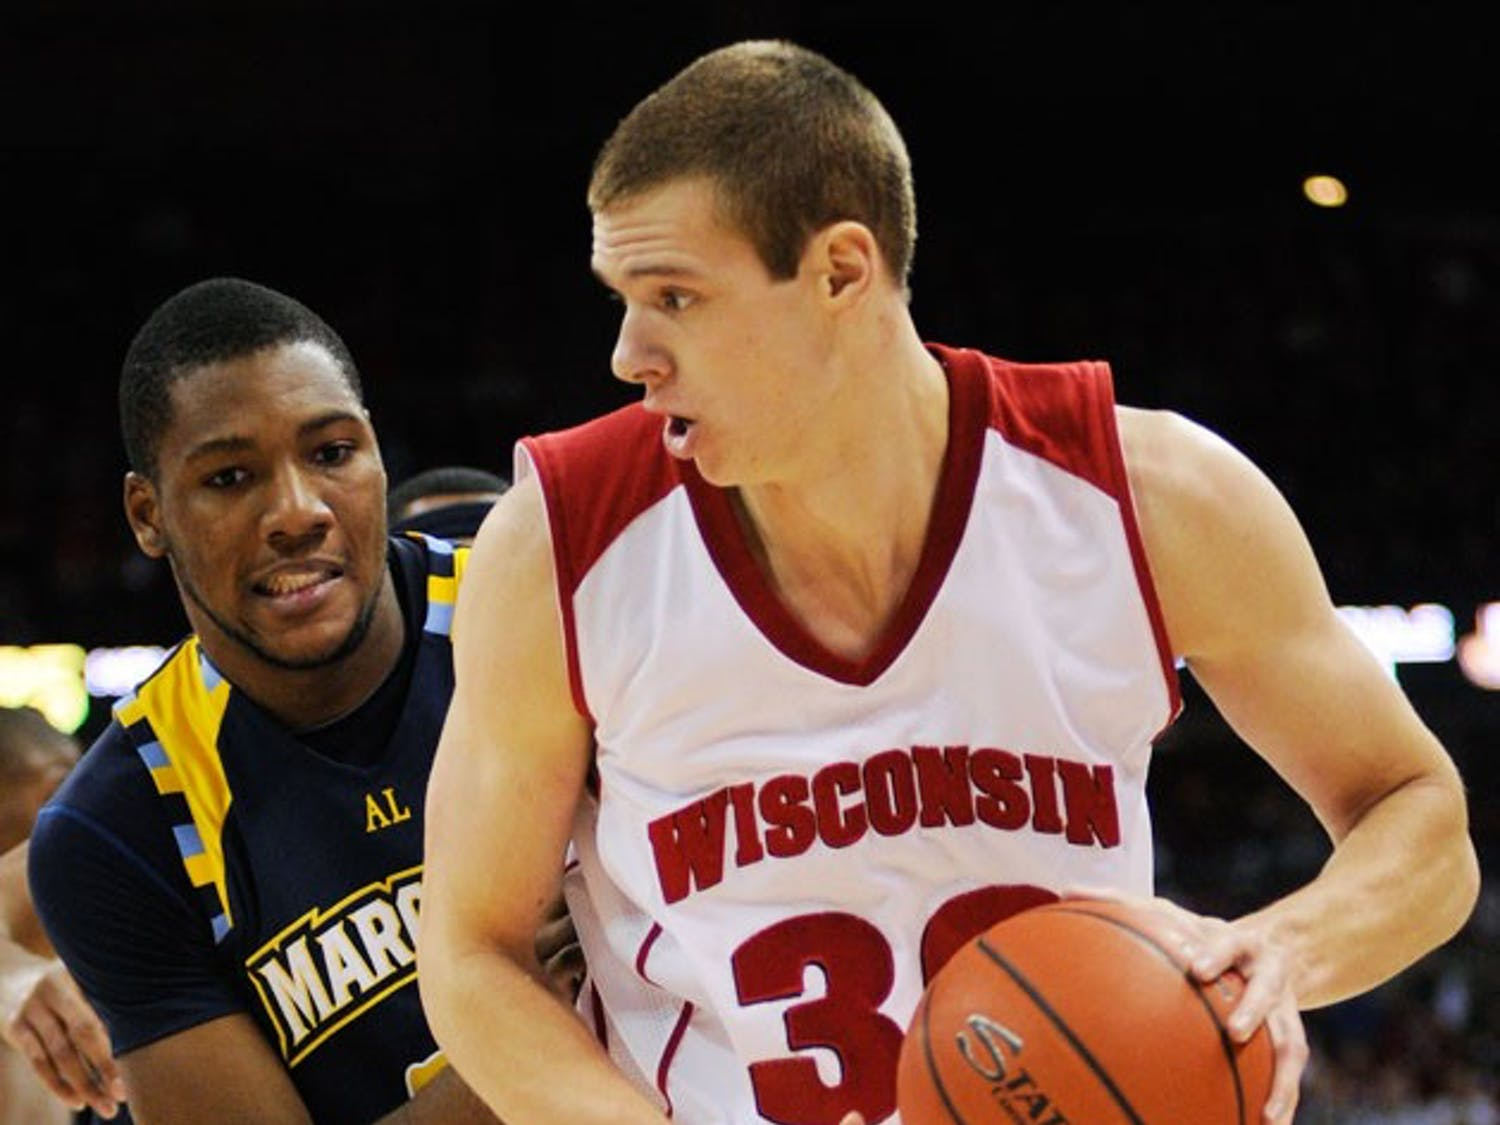 Wisconsin begins Big Ten play well but will sorely miss Leuer